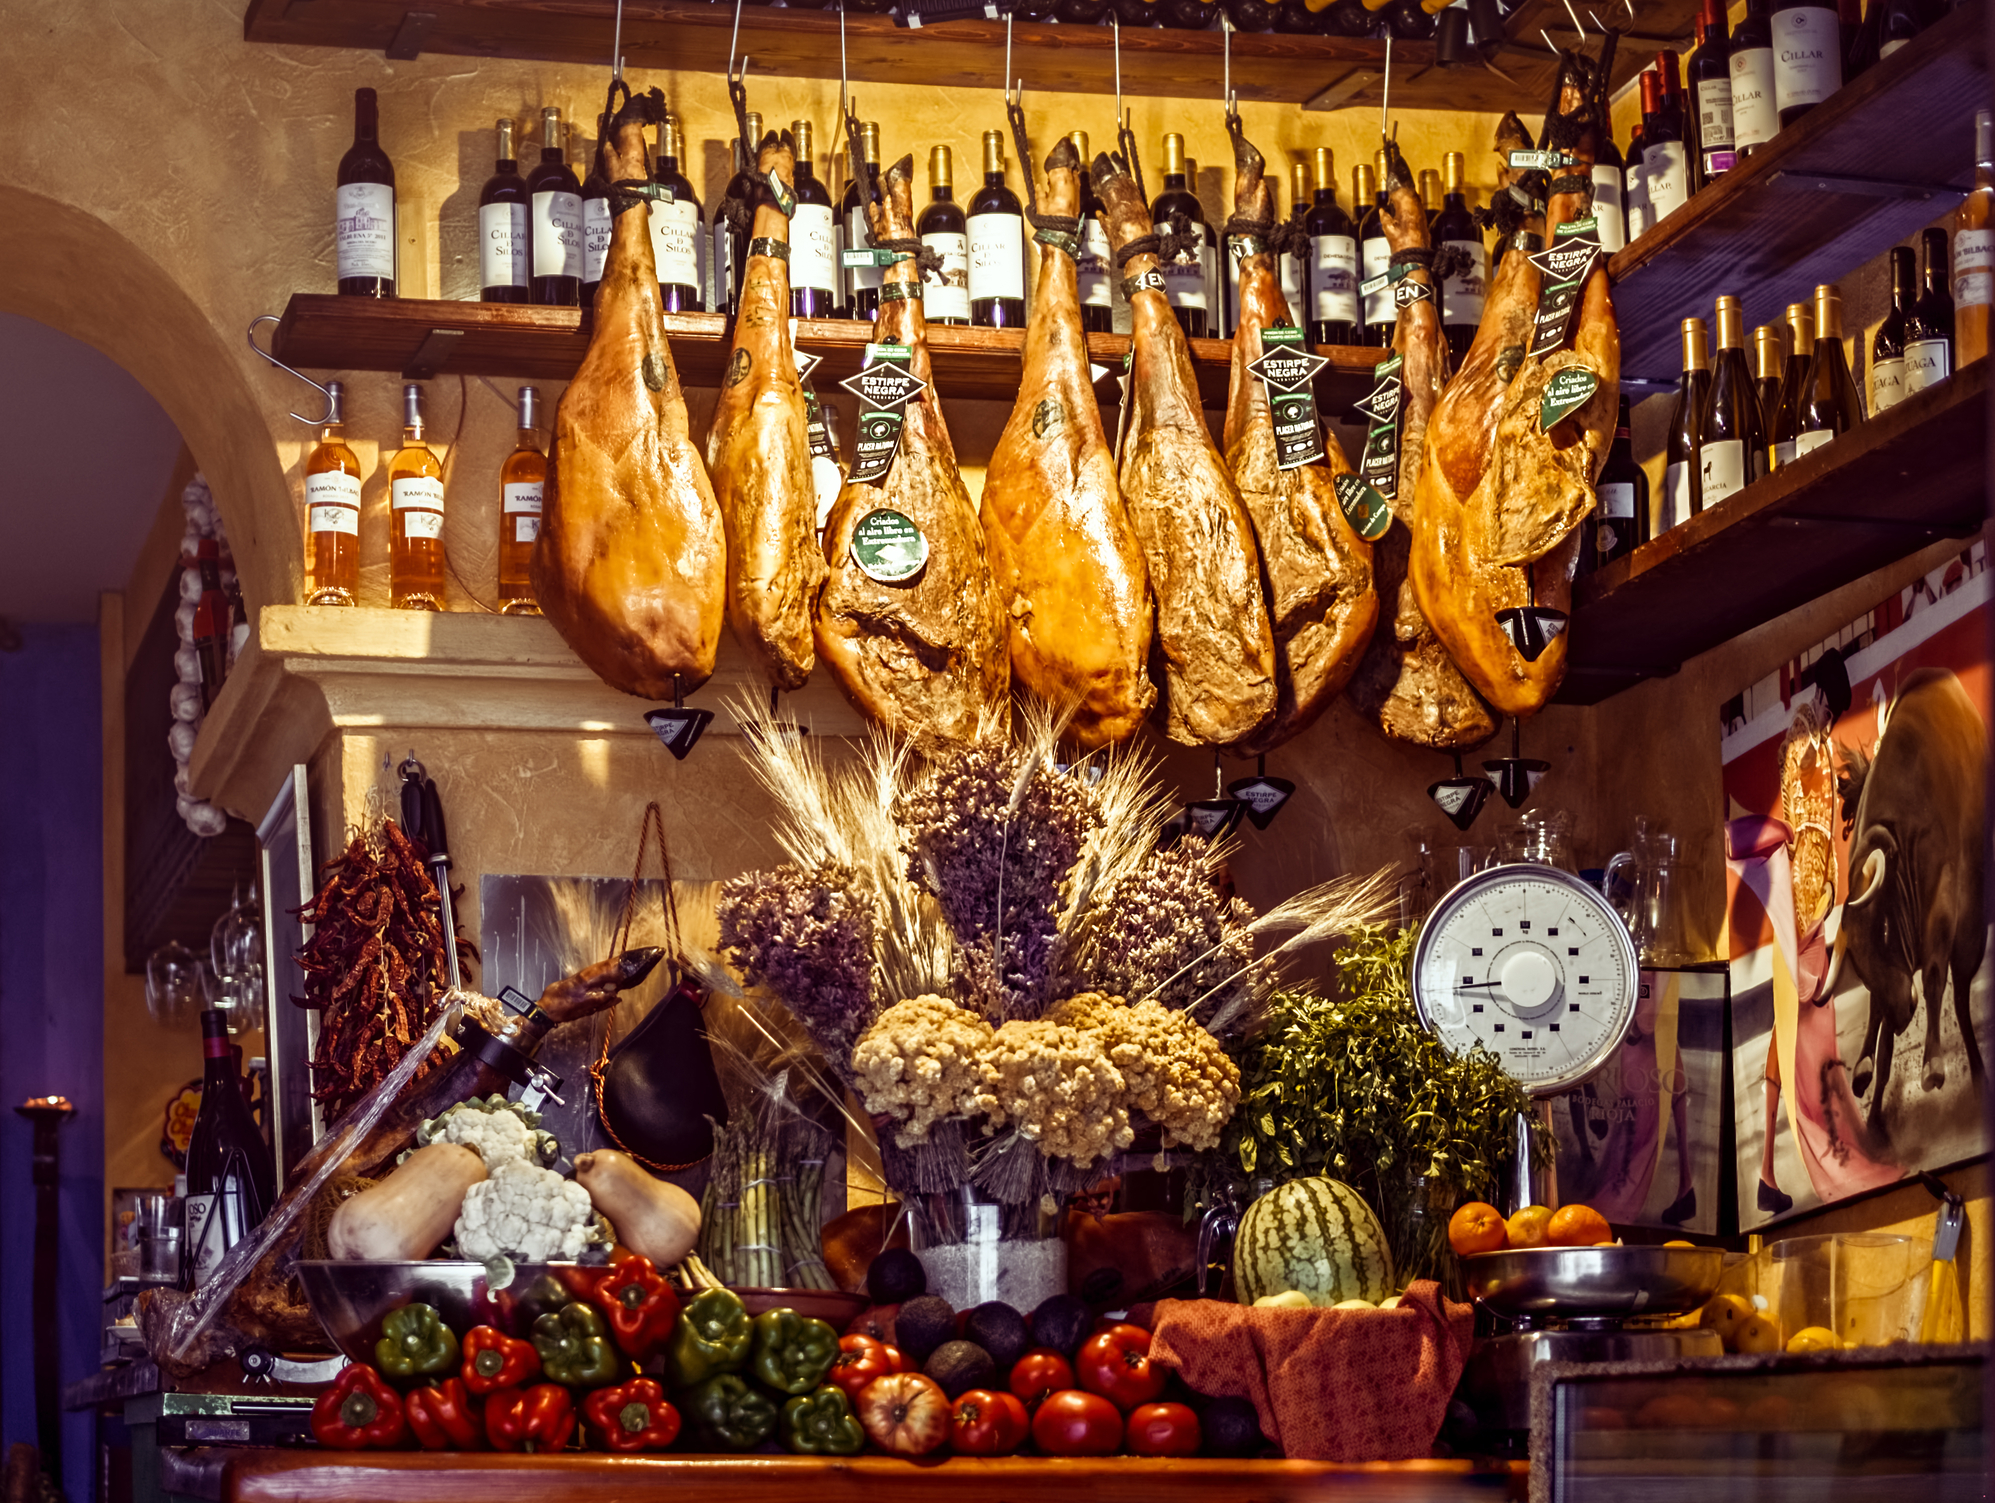 Spanish Ham And Wine In Speciality Shop